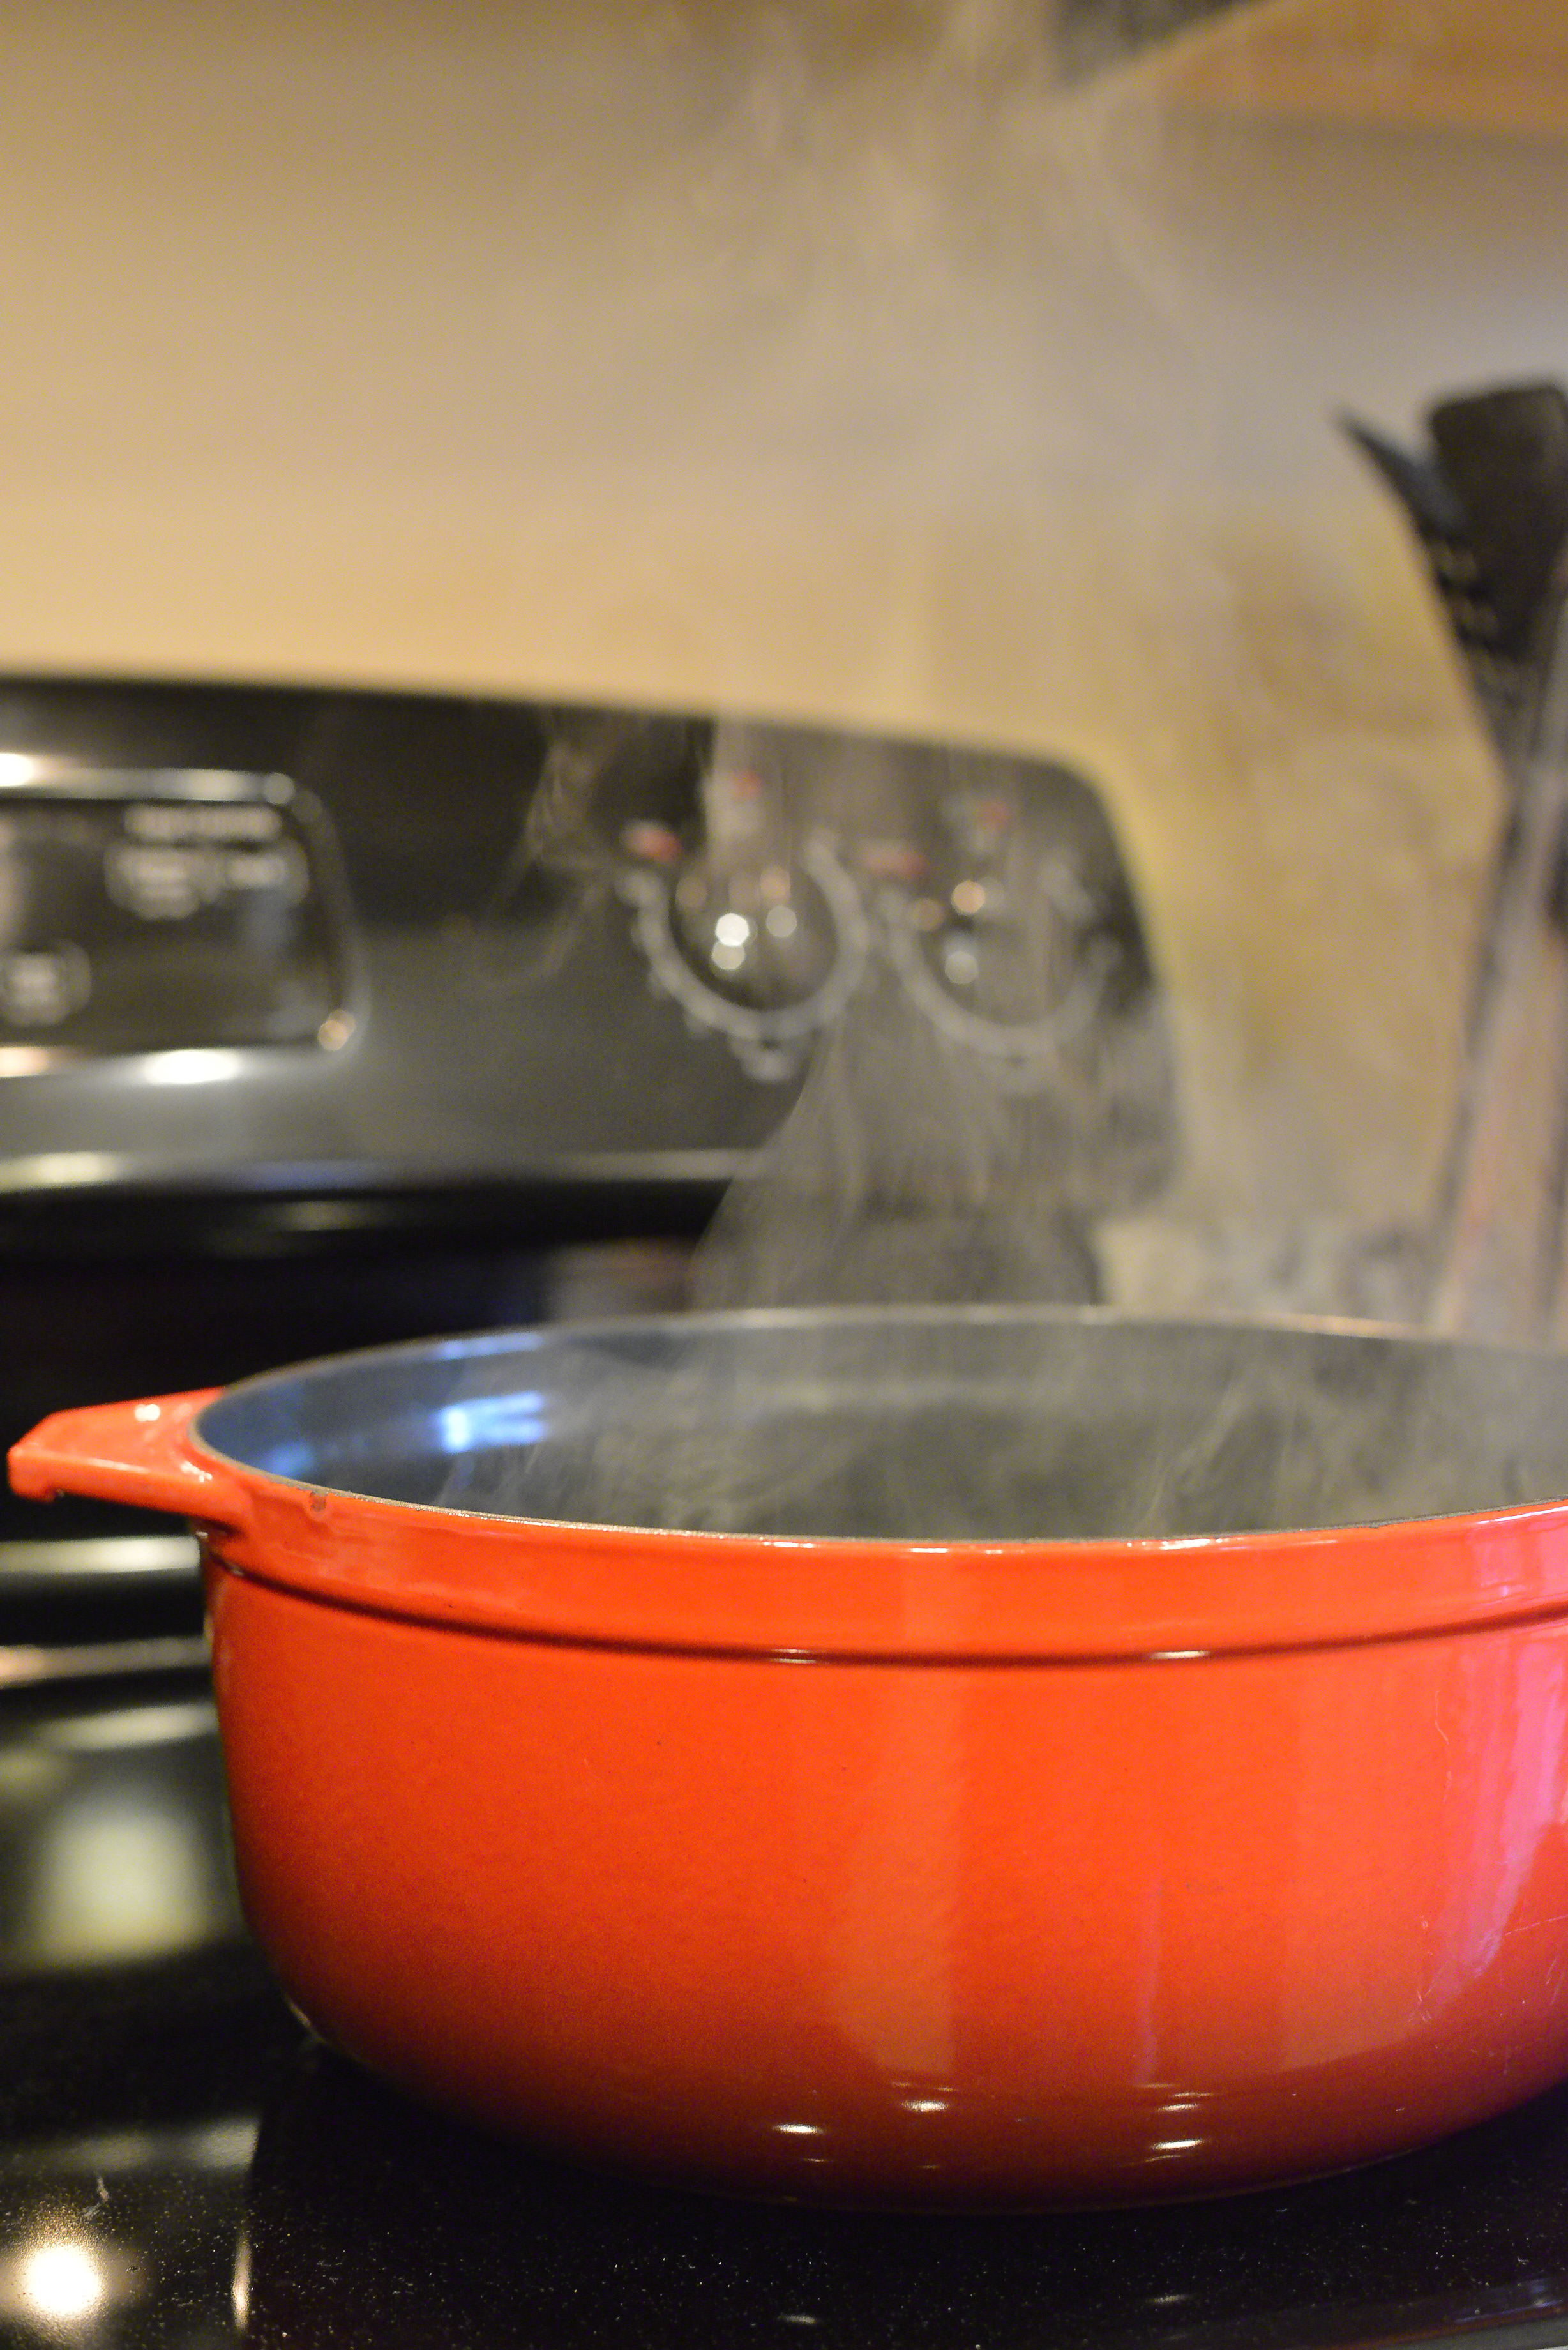 Beautiful pot of soup cooking on the stove.